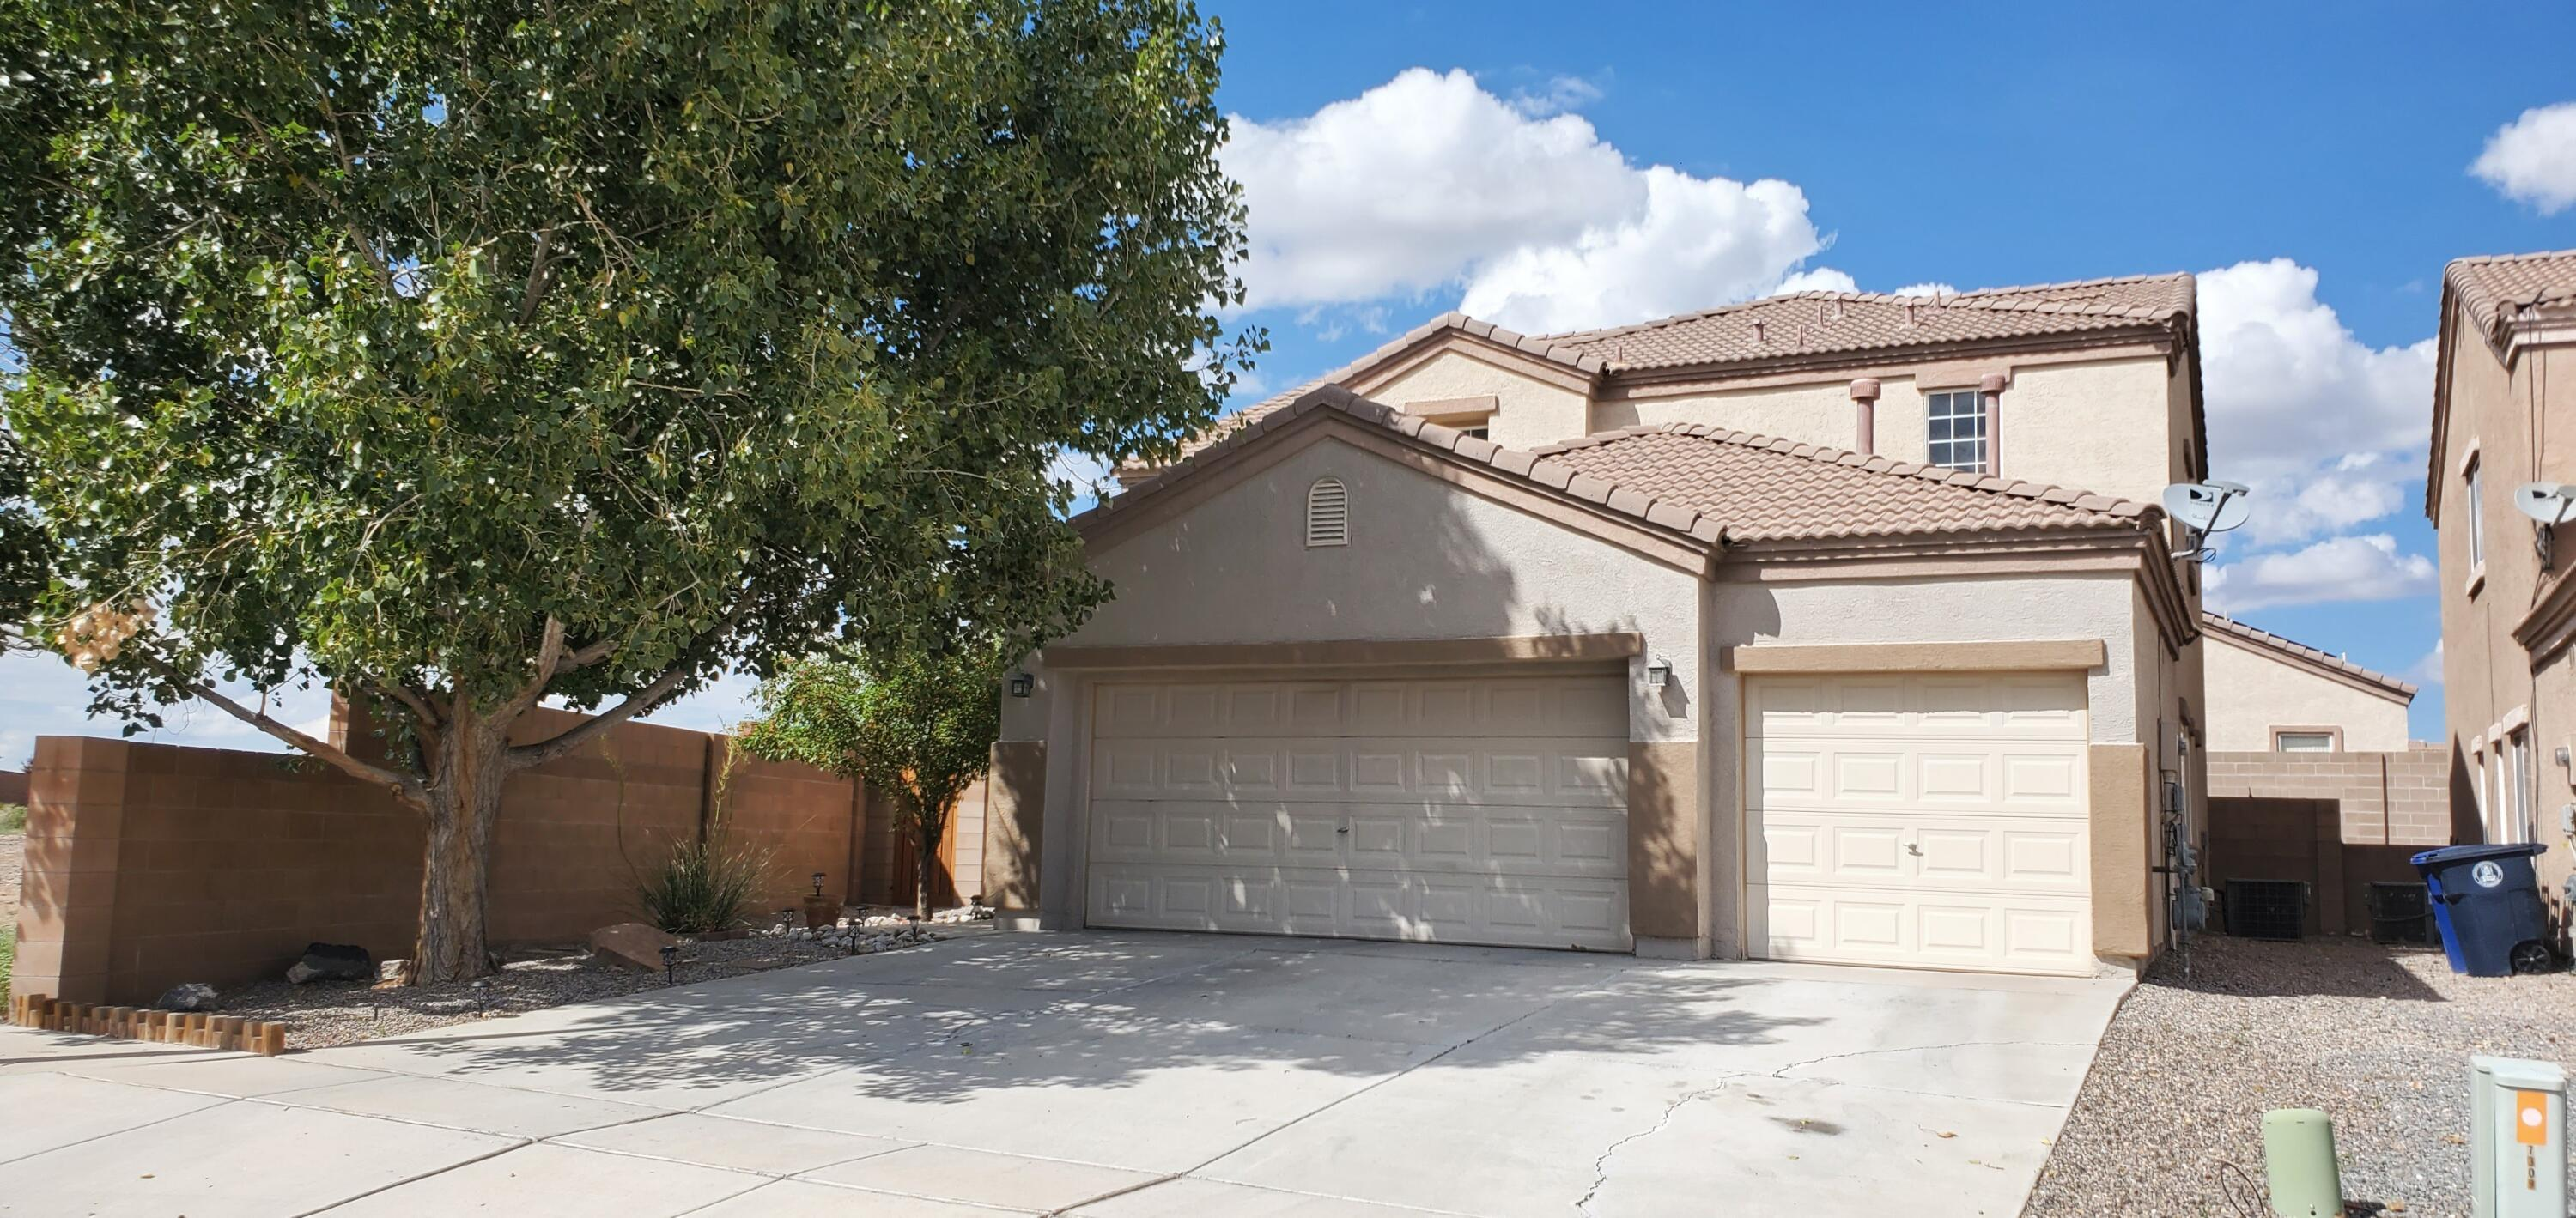 This beautiful & spacious corner lot, 4 bedroom, 2 3/4 baths, 3 car garage home is a must see! Downstairs features an open floor plan, with 2 living areas, large kitchen, bedroom and 3/4 bathroom. On the second floor you will find the laundry room with a walk in closet, second and third bedrooms, and double sink bathroom. Upstairs master bedroom has a private balcony, large bathroom with garden tub, and oversized walk-in closet. New water heater, carpet, blinds, and a soft water filtration system throughout the entire house. This fabulous corner lot home has a large backyard that wraps around the west side of the house, peaceful for relaxing and ample space for entertaining. Walking distance to parks and schools.